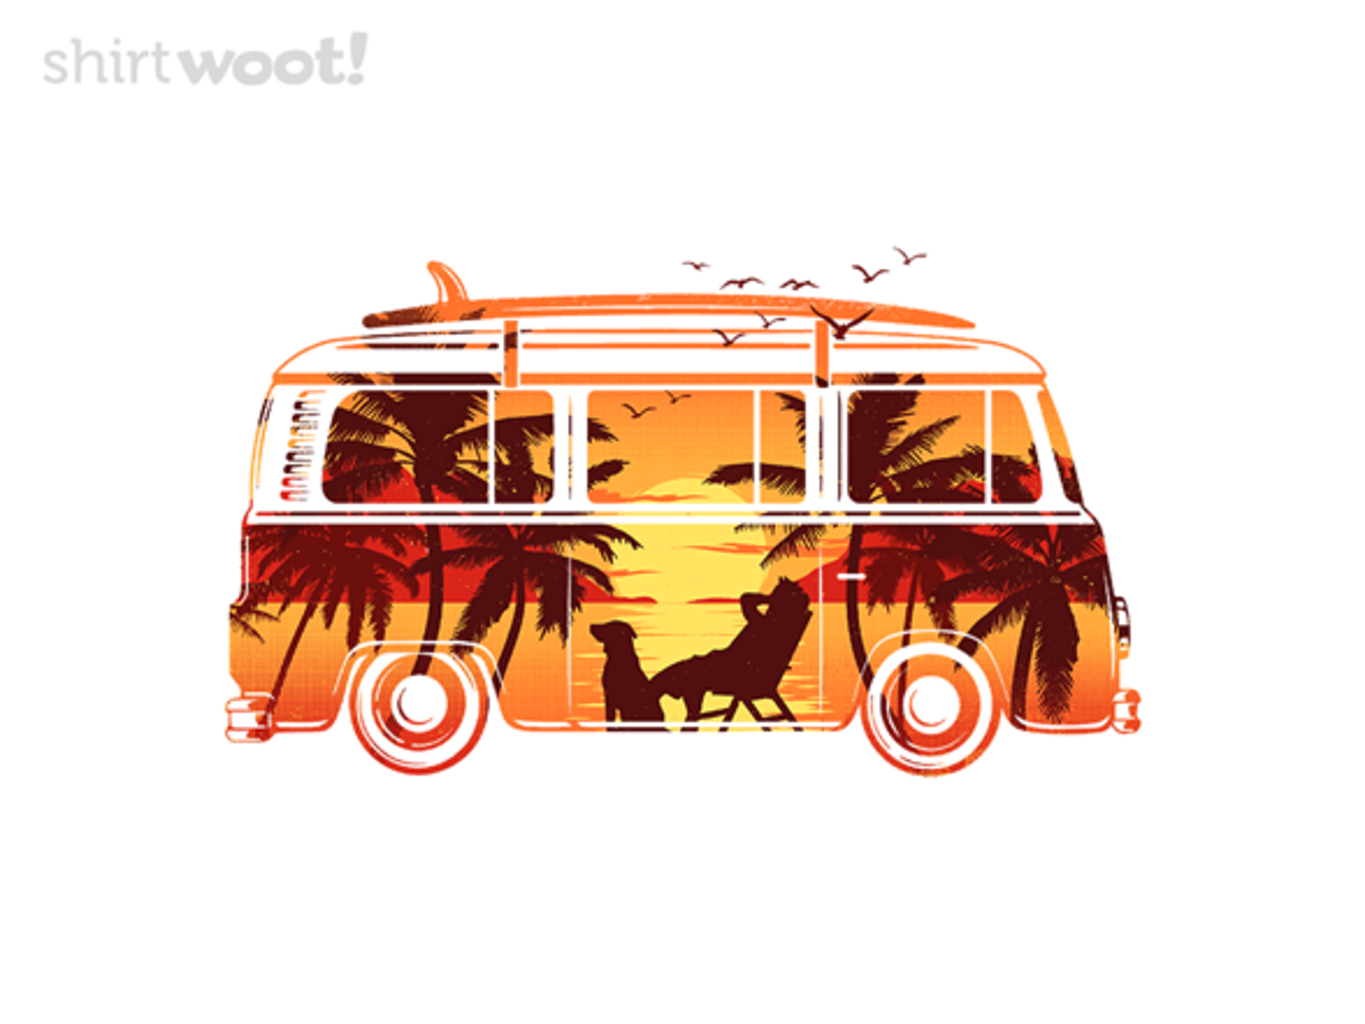 Woot!: Roadtrip to the Beach - $15.00 + Free shipping